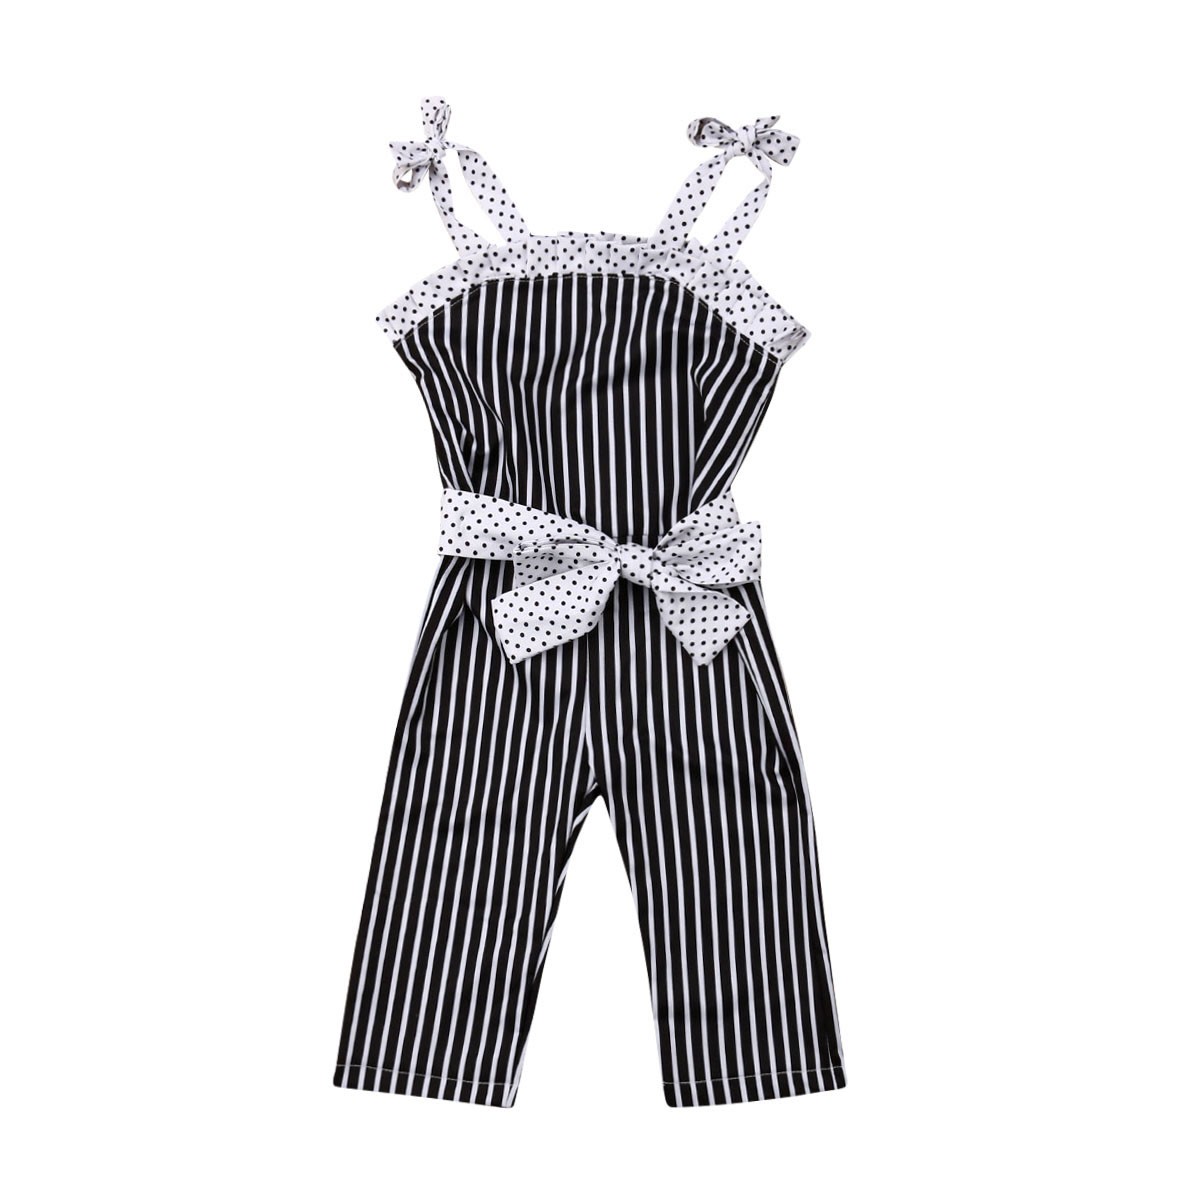 2019 New Toddler Kid Baby Girls   Romper   Striped Sleeveless Jumpsuit Girls Clothing Bow Overalls Summer